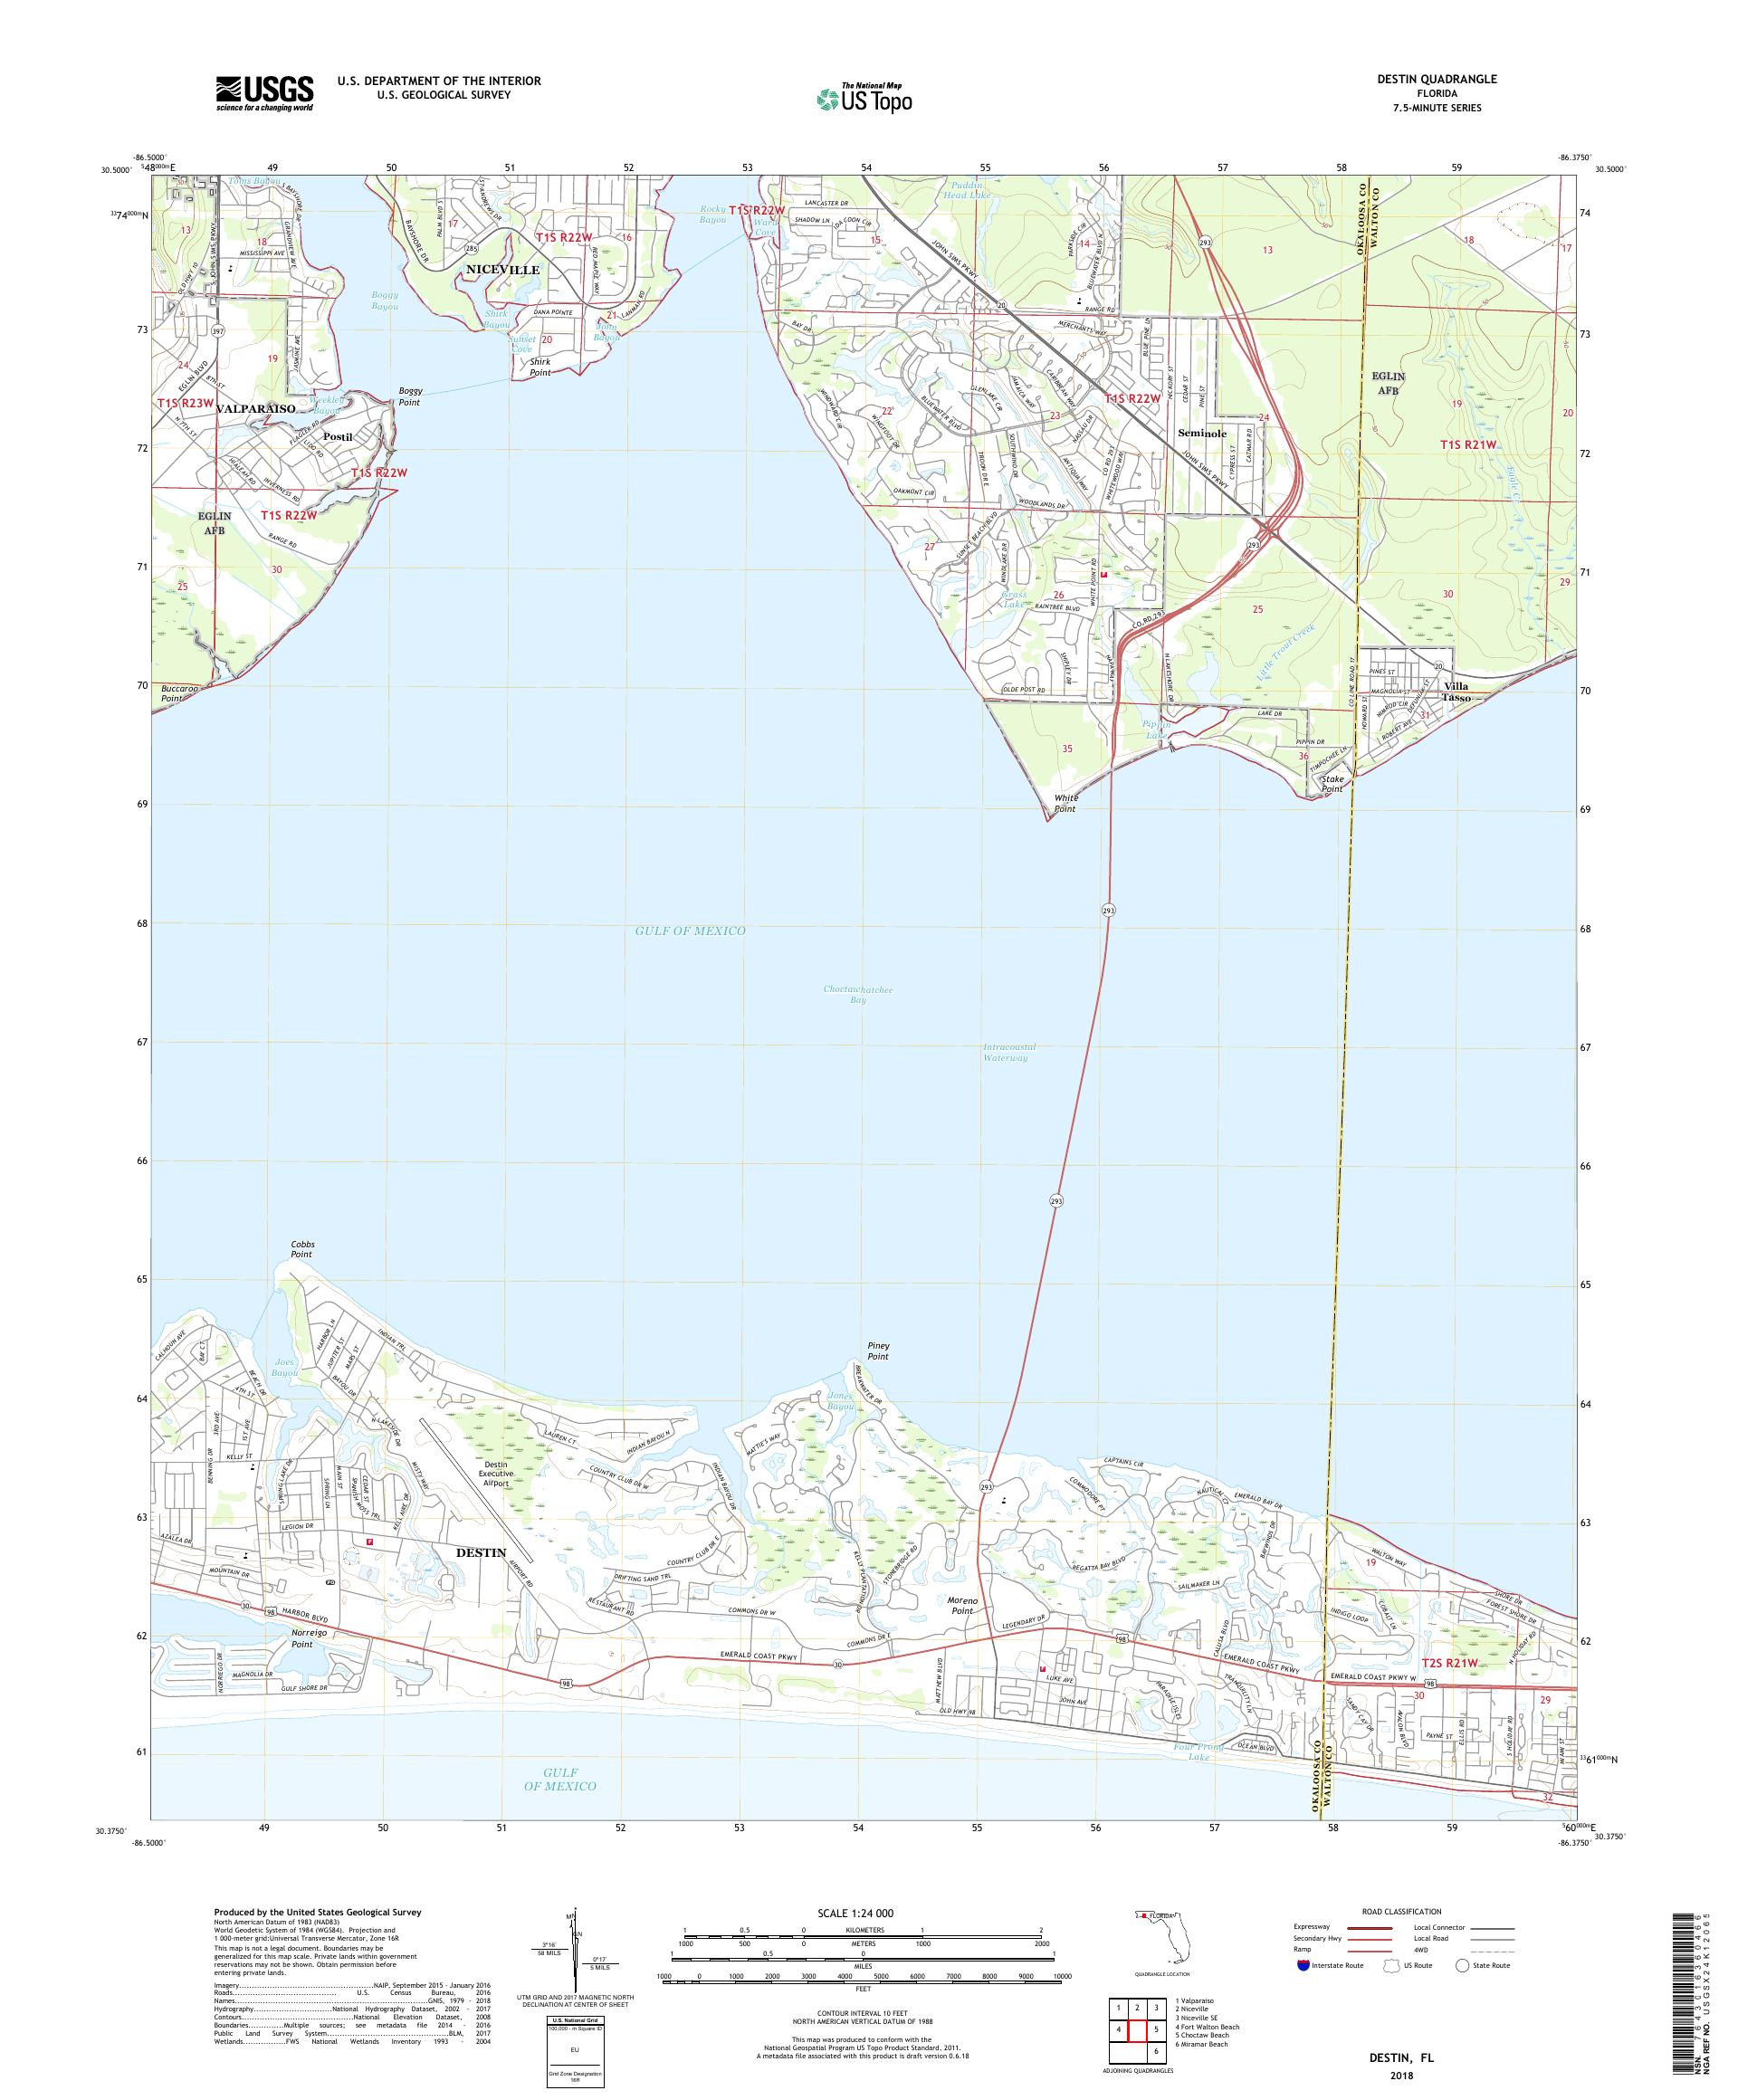 MyTopo Destin, Florida USGS Quad Topo Map